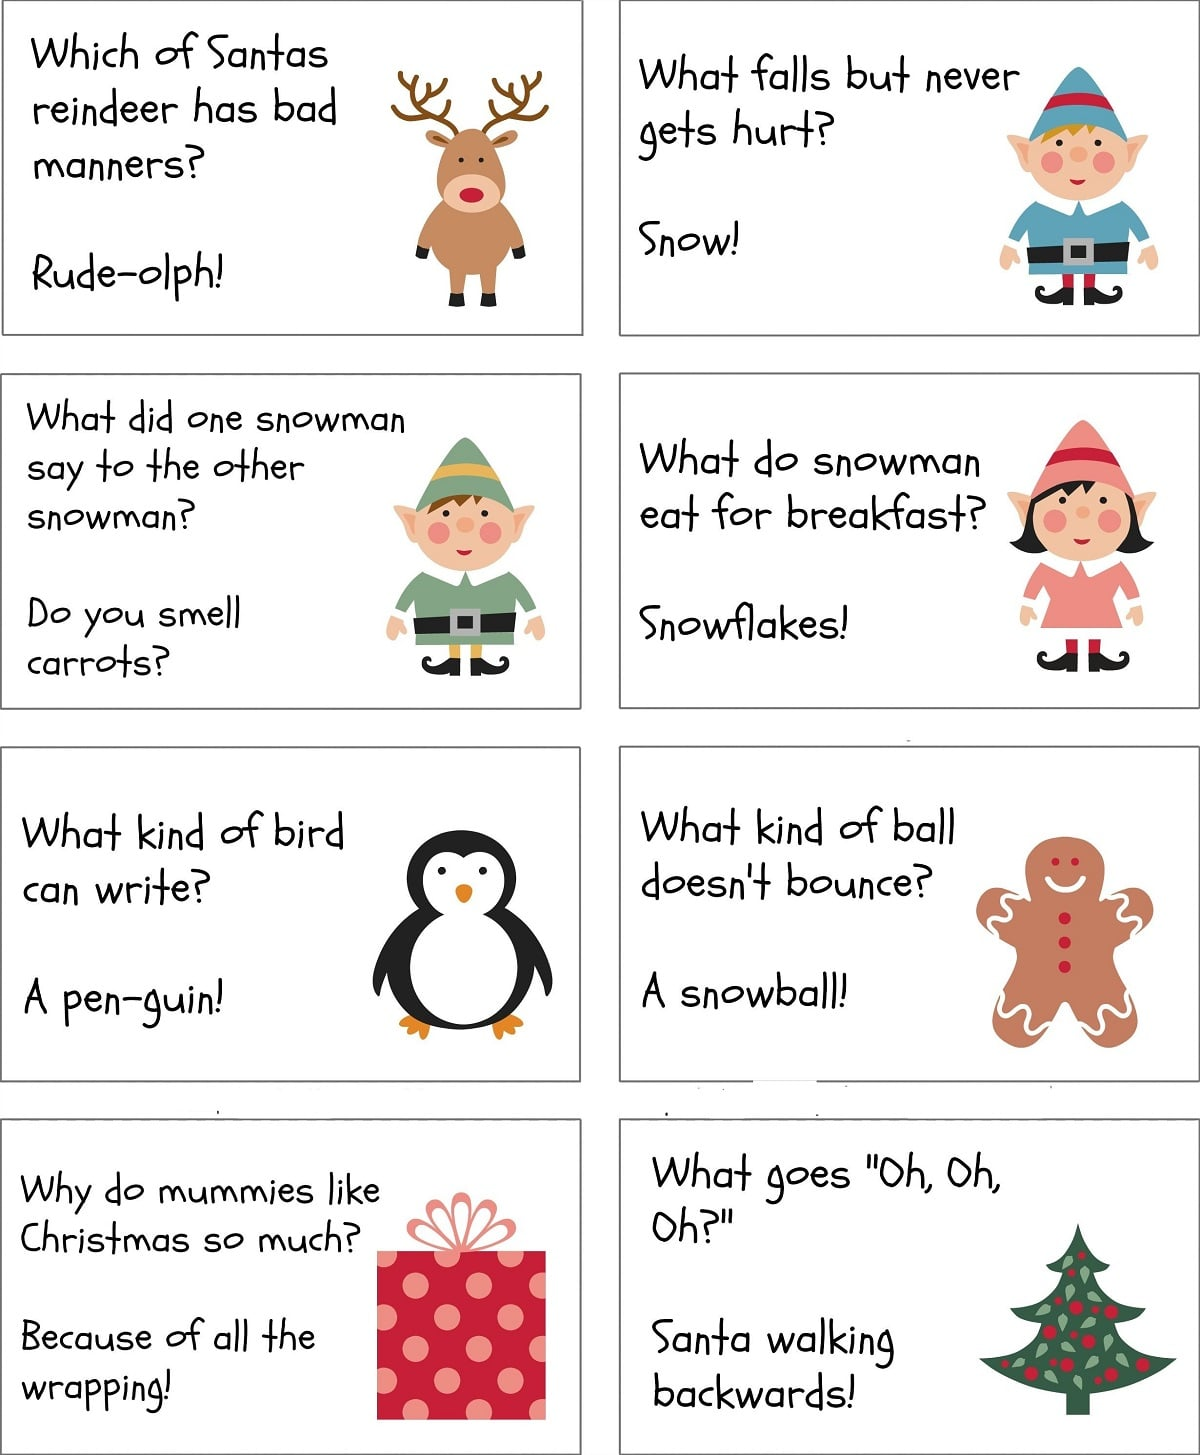 Christmas Riddles.Christmas Riddles For Scavenger Hunt Kids Adults With